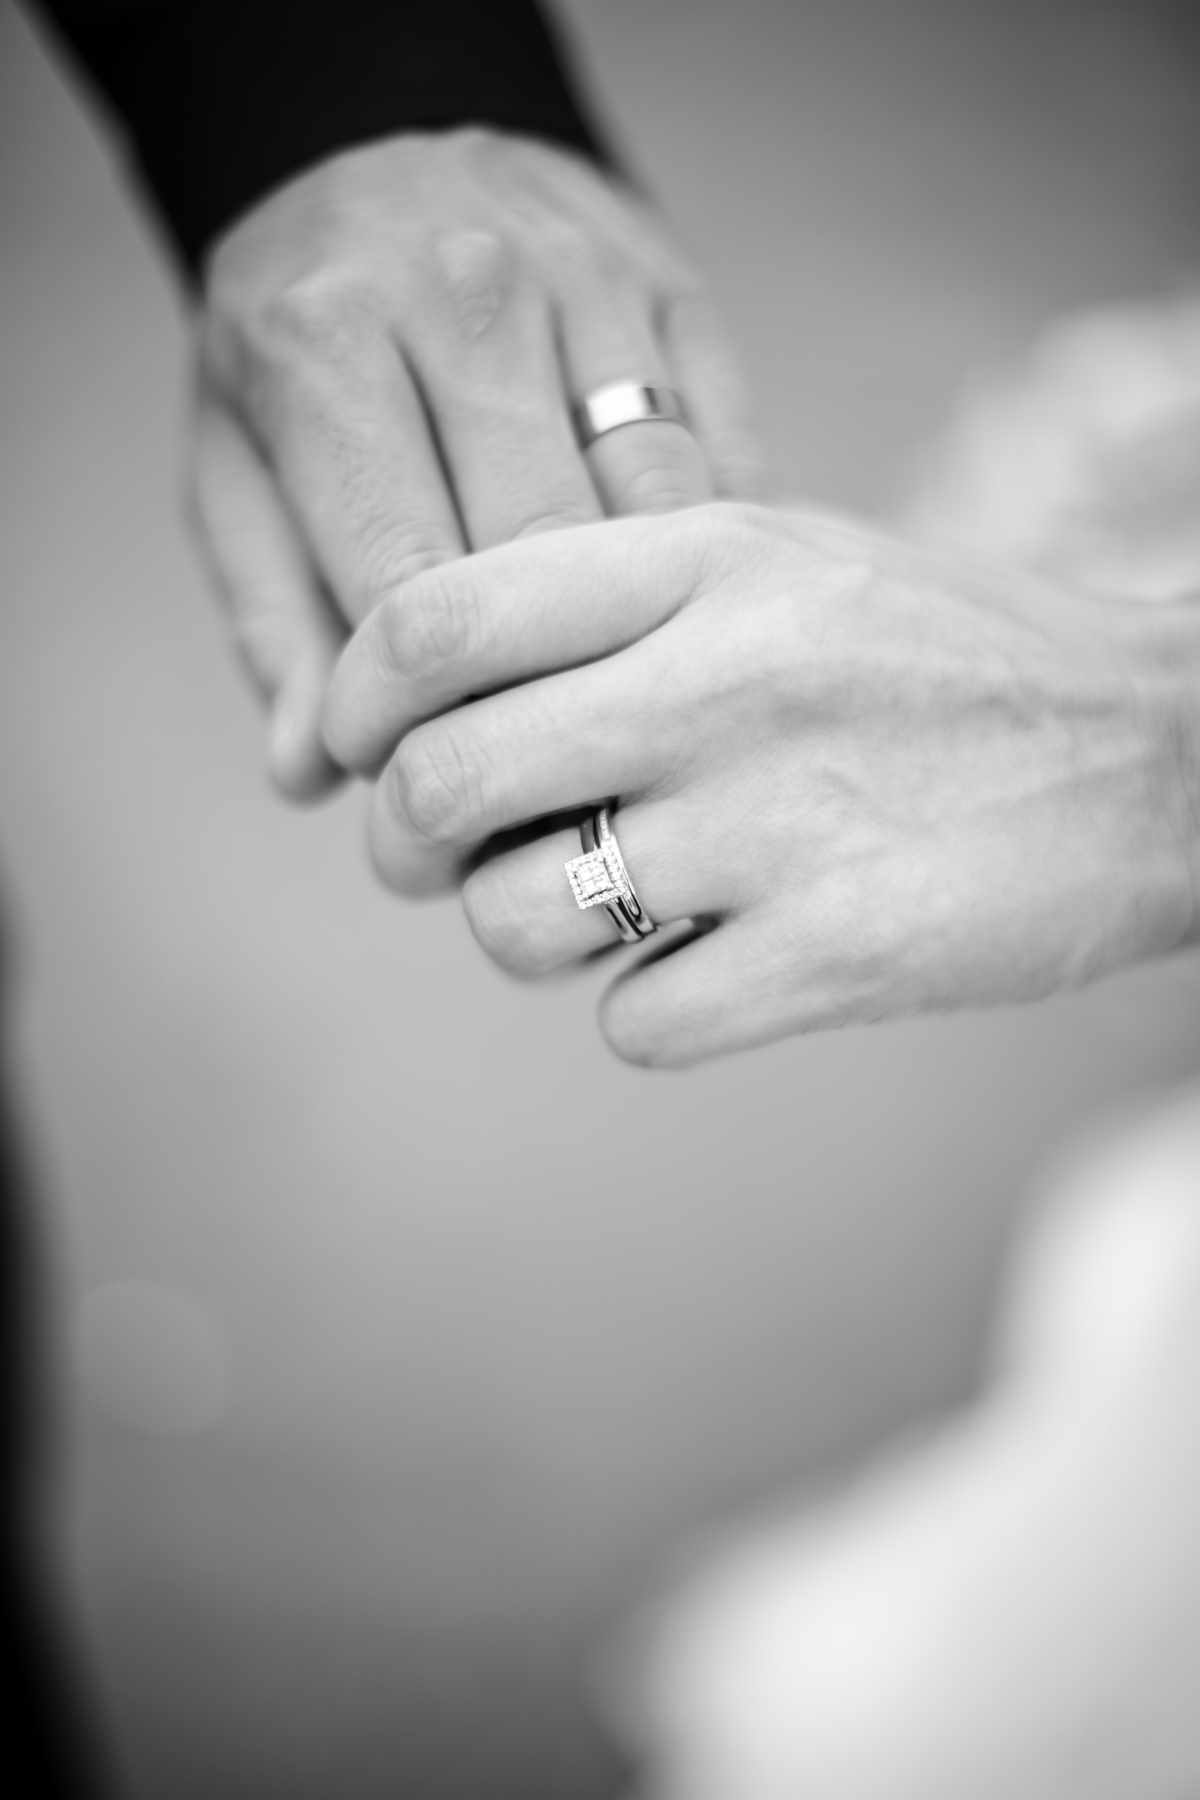 Wedding photographer image of a couples hands